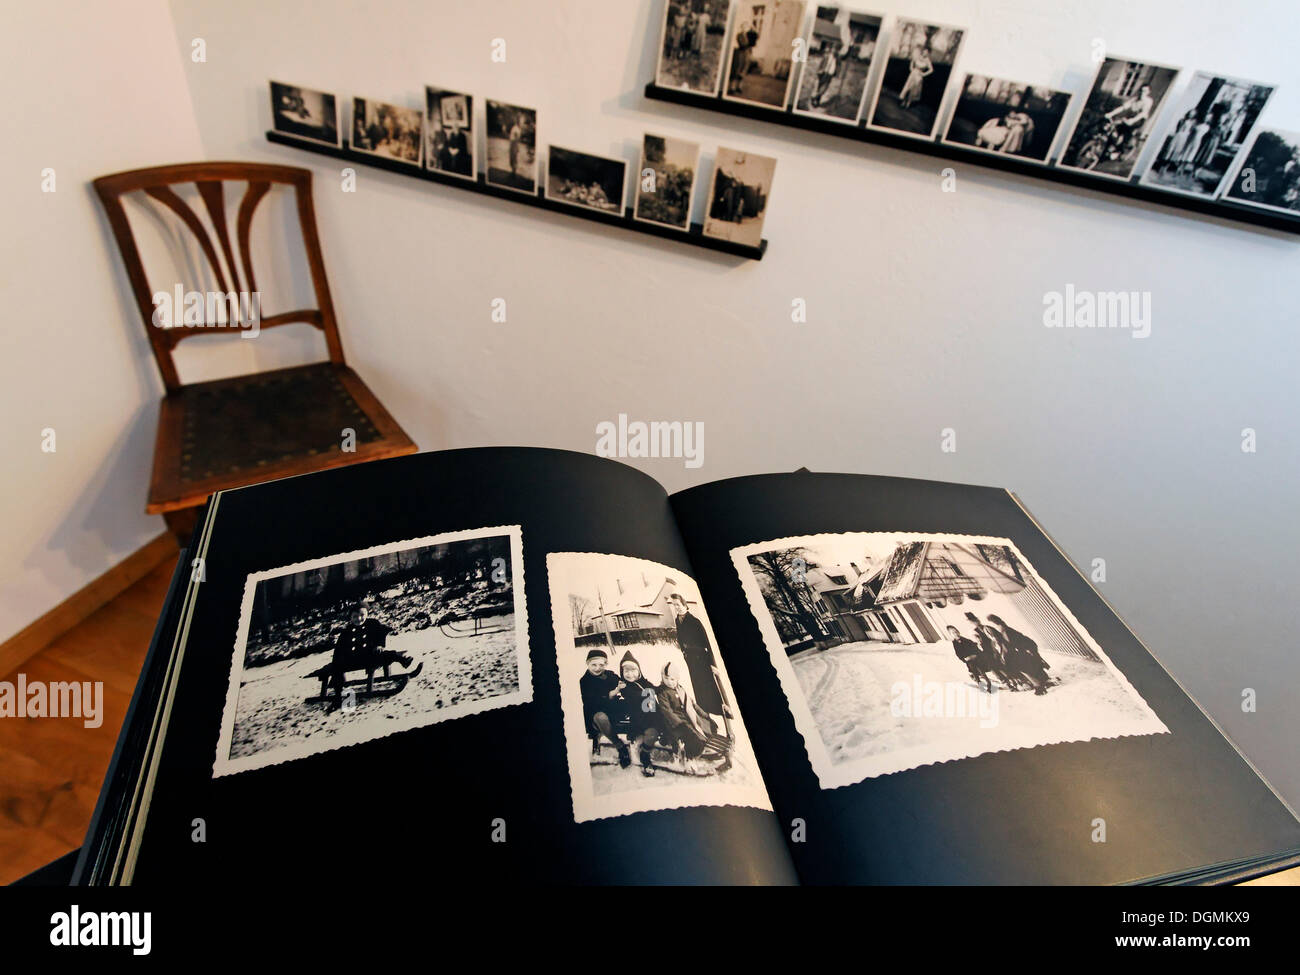 Photo album with historical photographs, children of employees of the first ironworks in the Ruhrgebiet region, St. - Stock Image